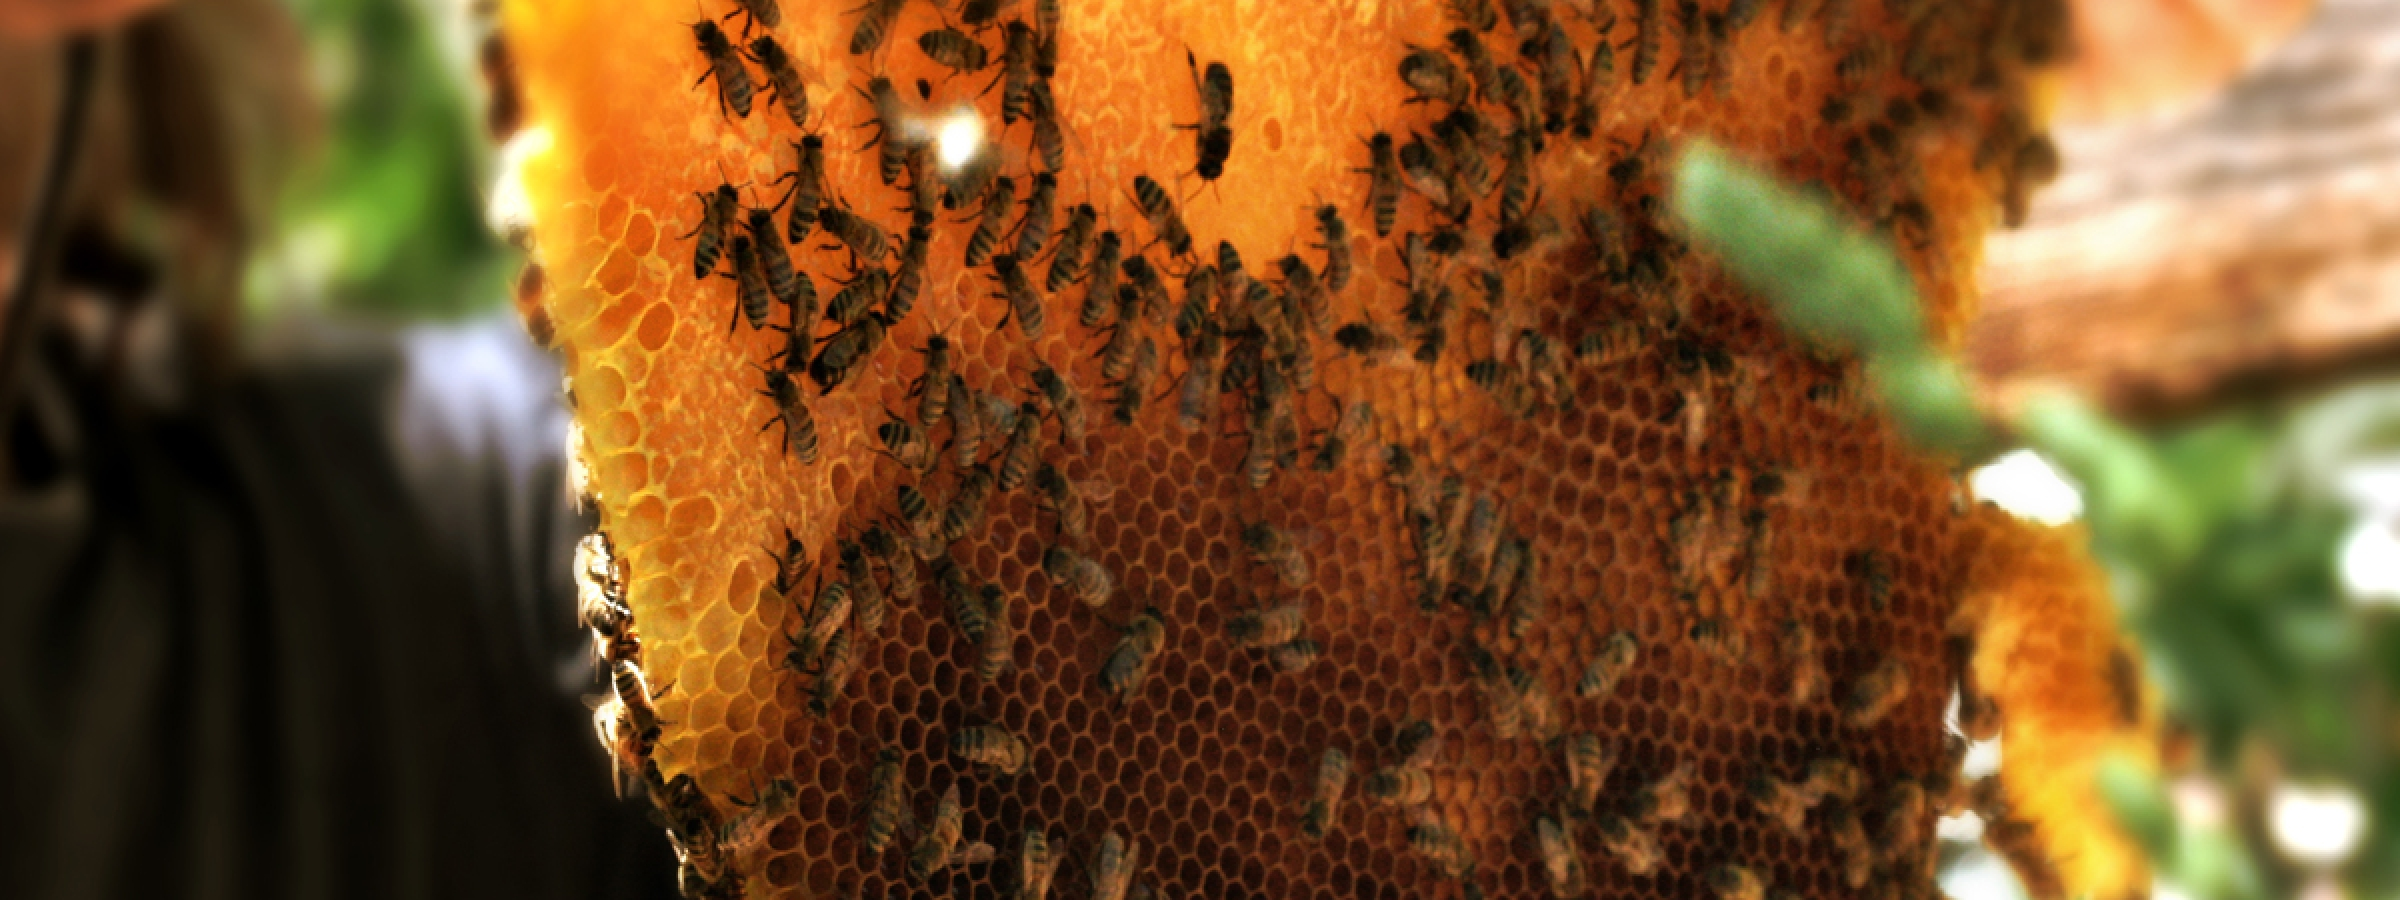 Urban Conversion - Colony Collapse Disorder